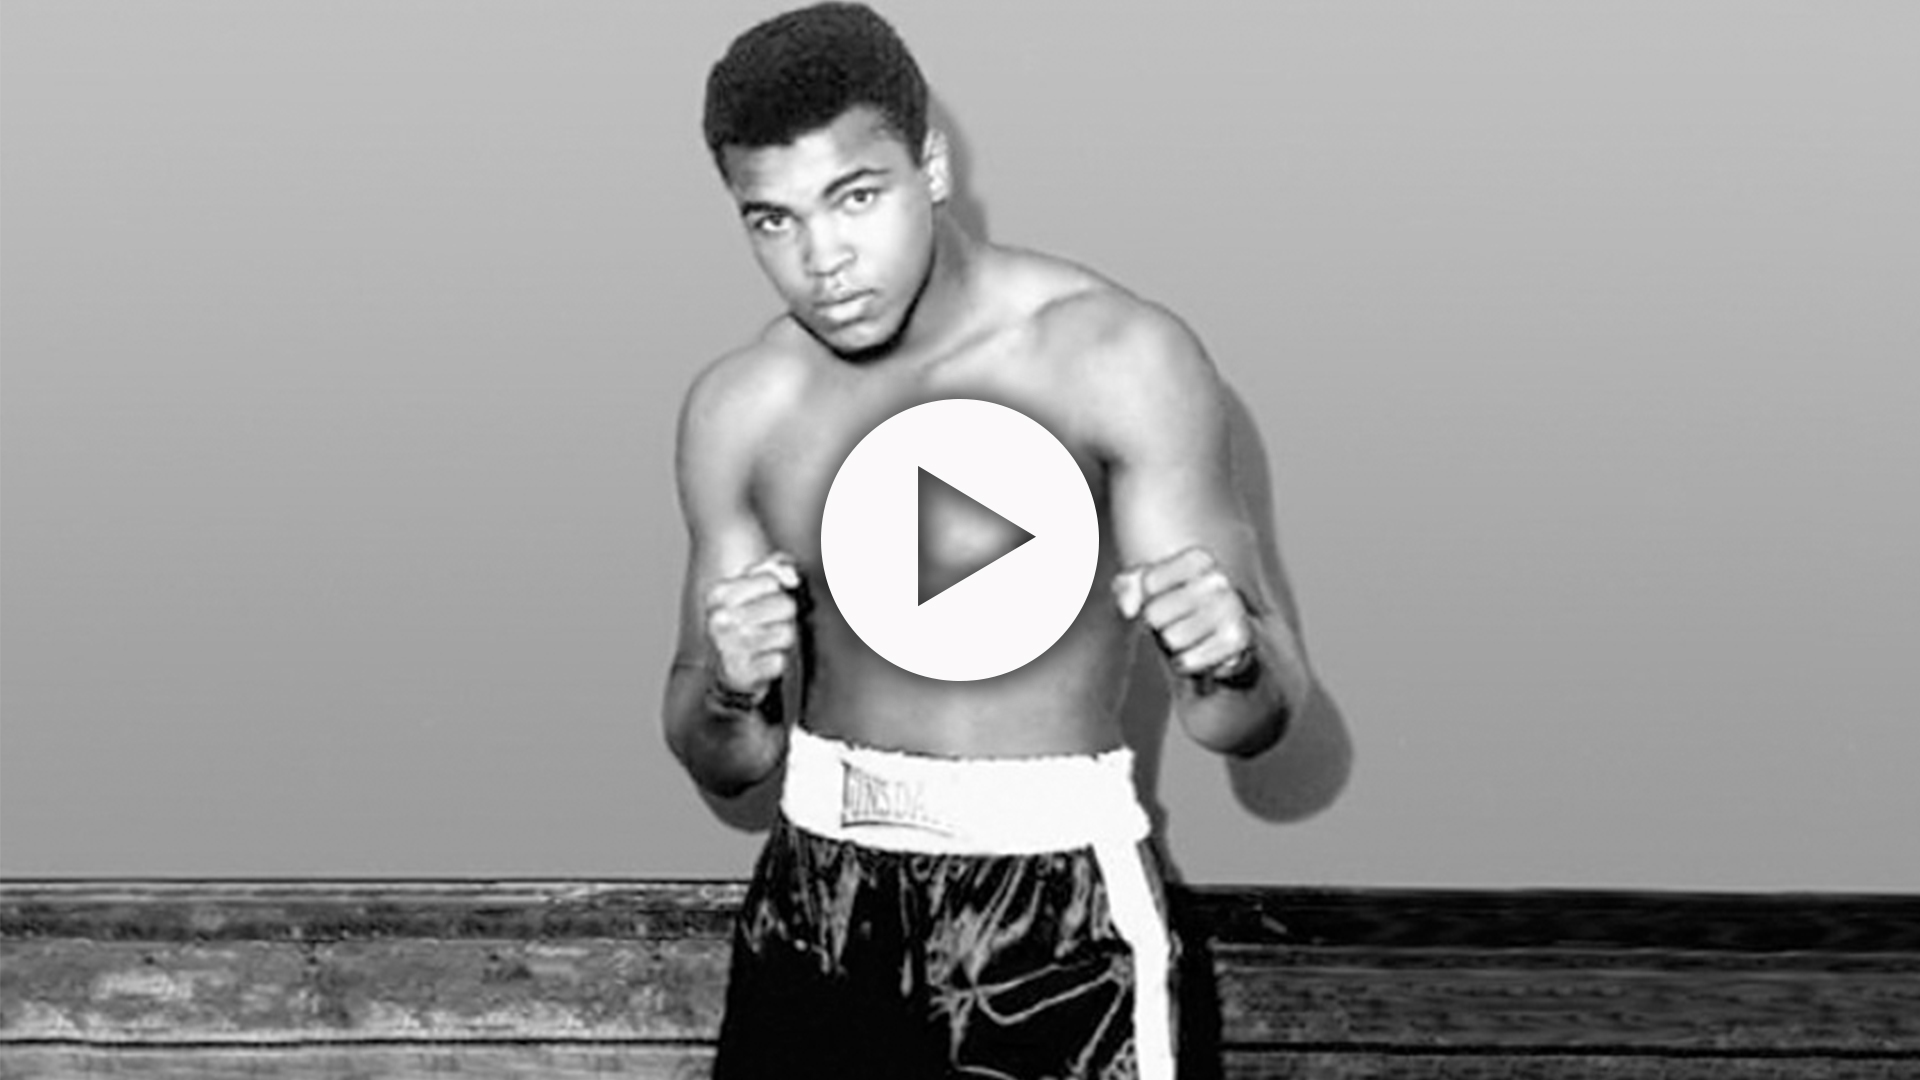 Muhammad Ali in a boxing pose.